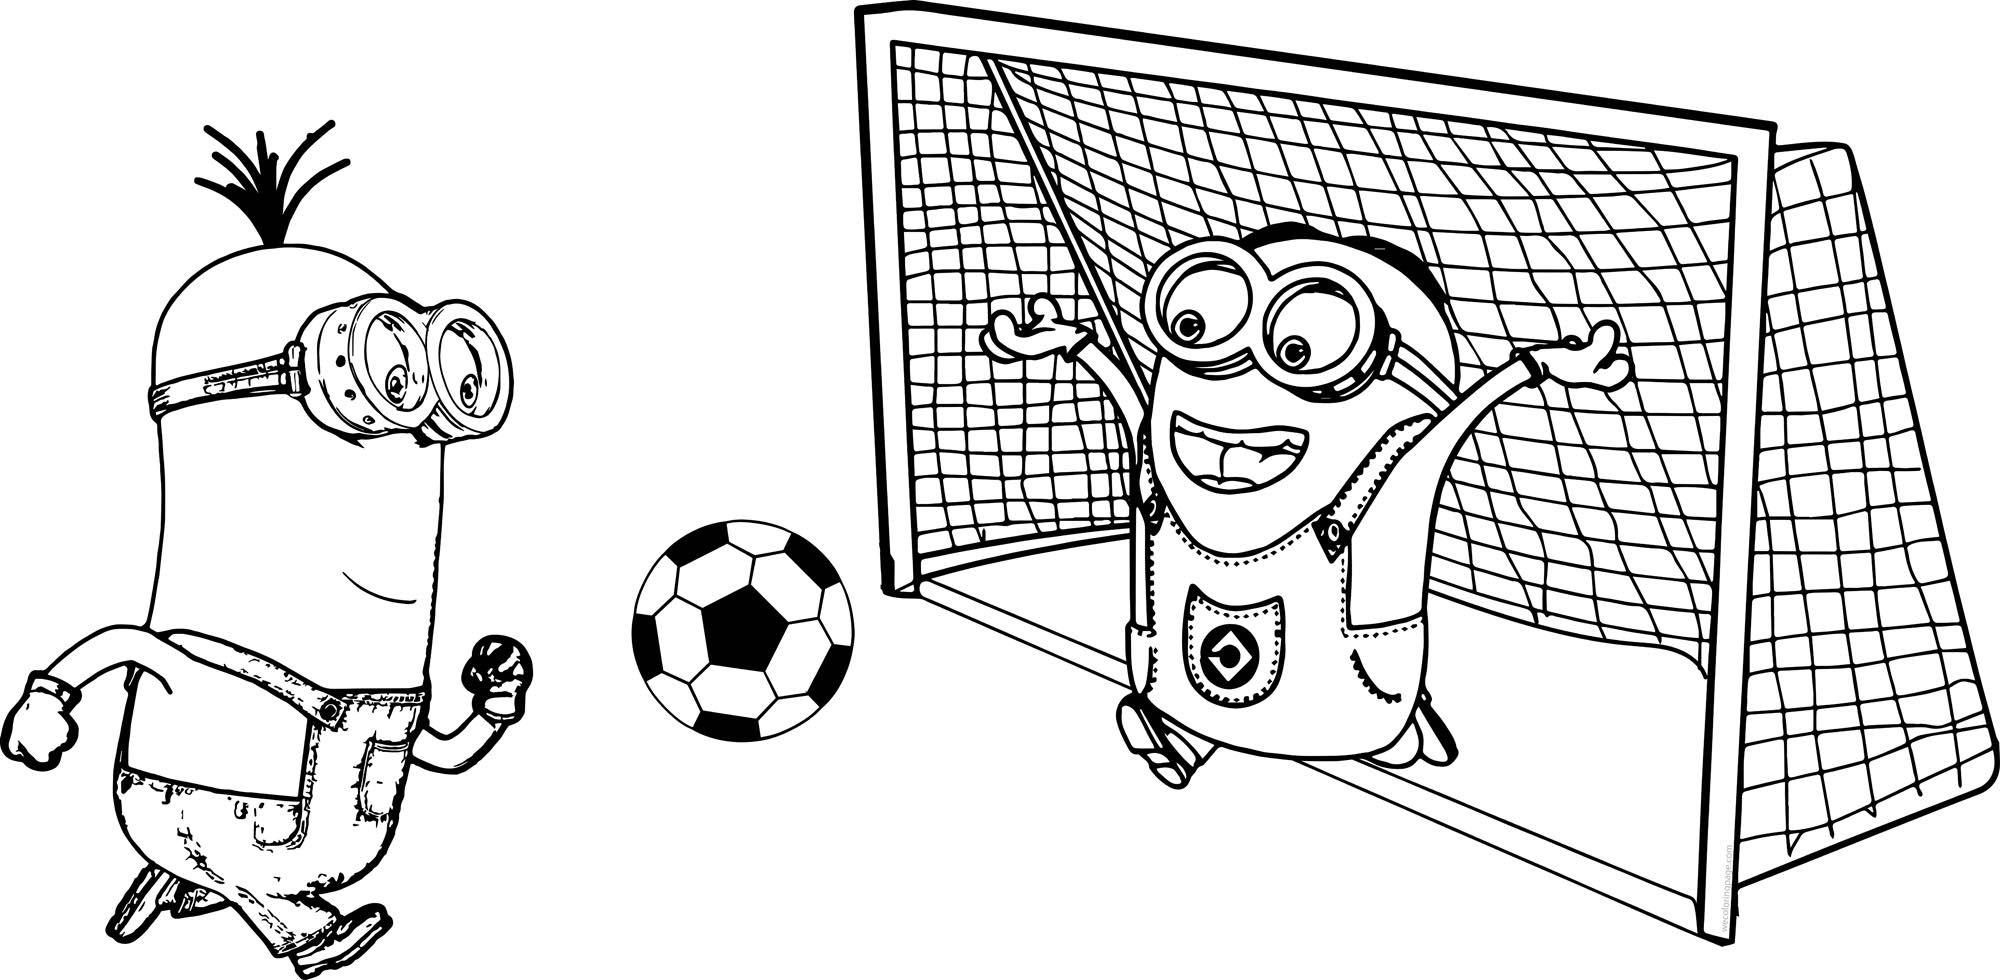 Cool Minion Kevin And Dave Playing Soccer Picture Coloring